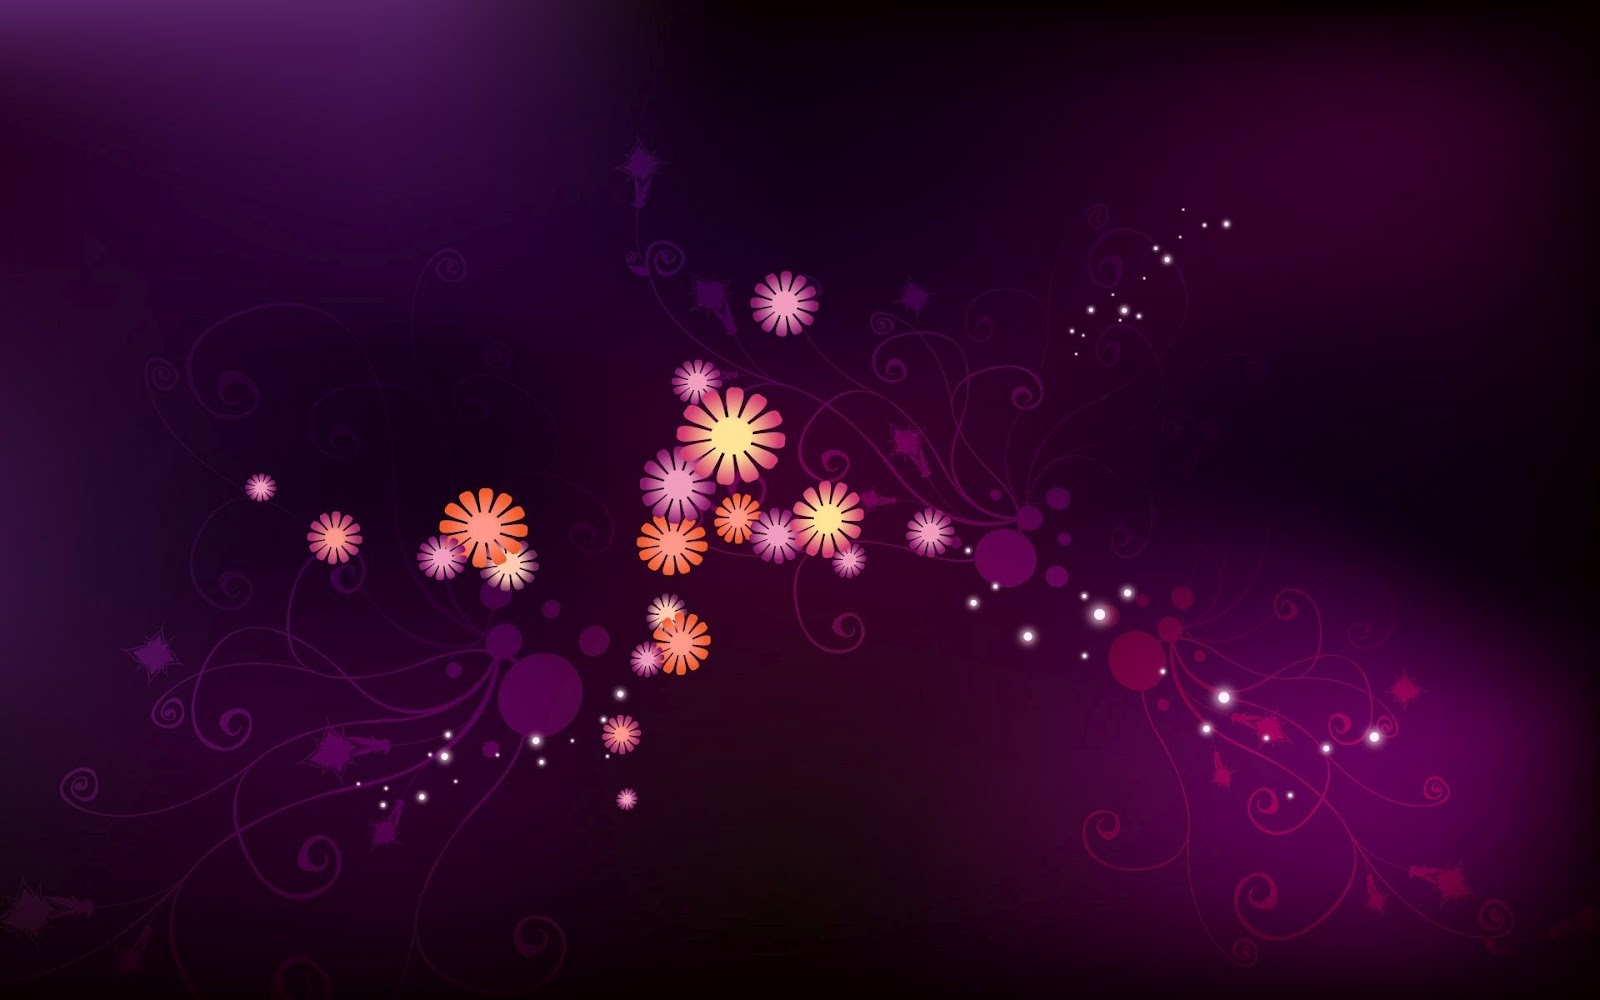 Small Flowers Design Purple Background Wallpapers | Purple ...